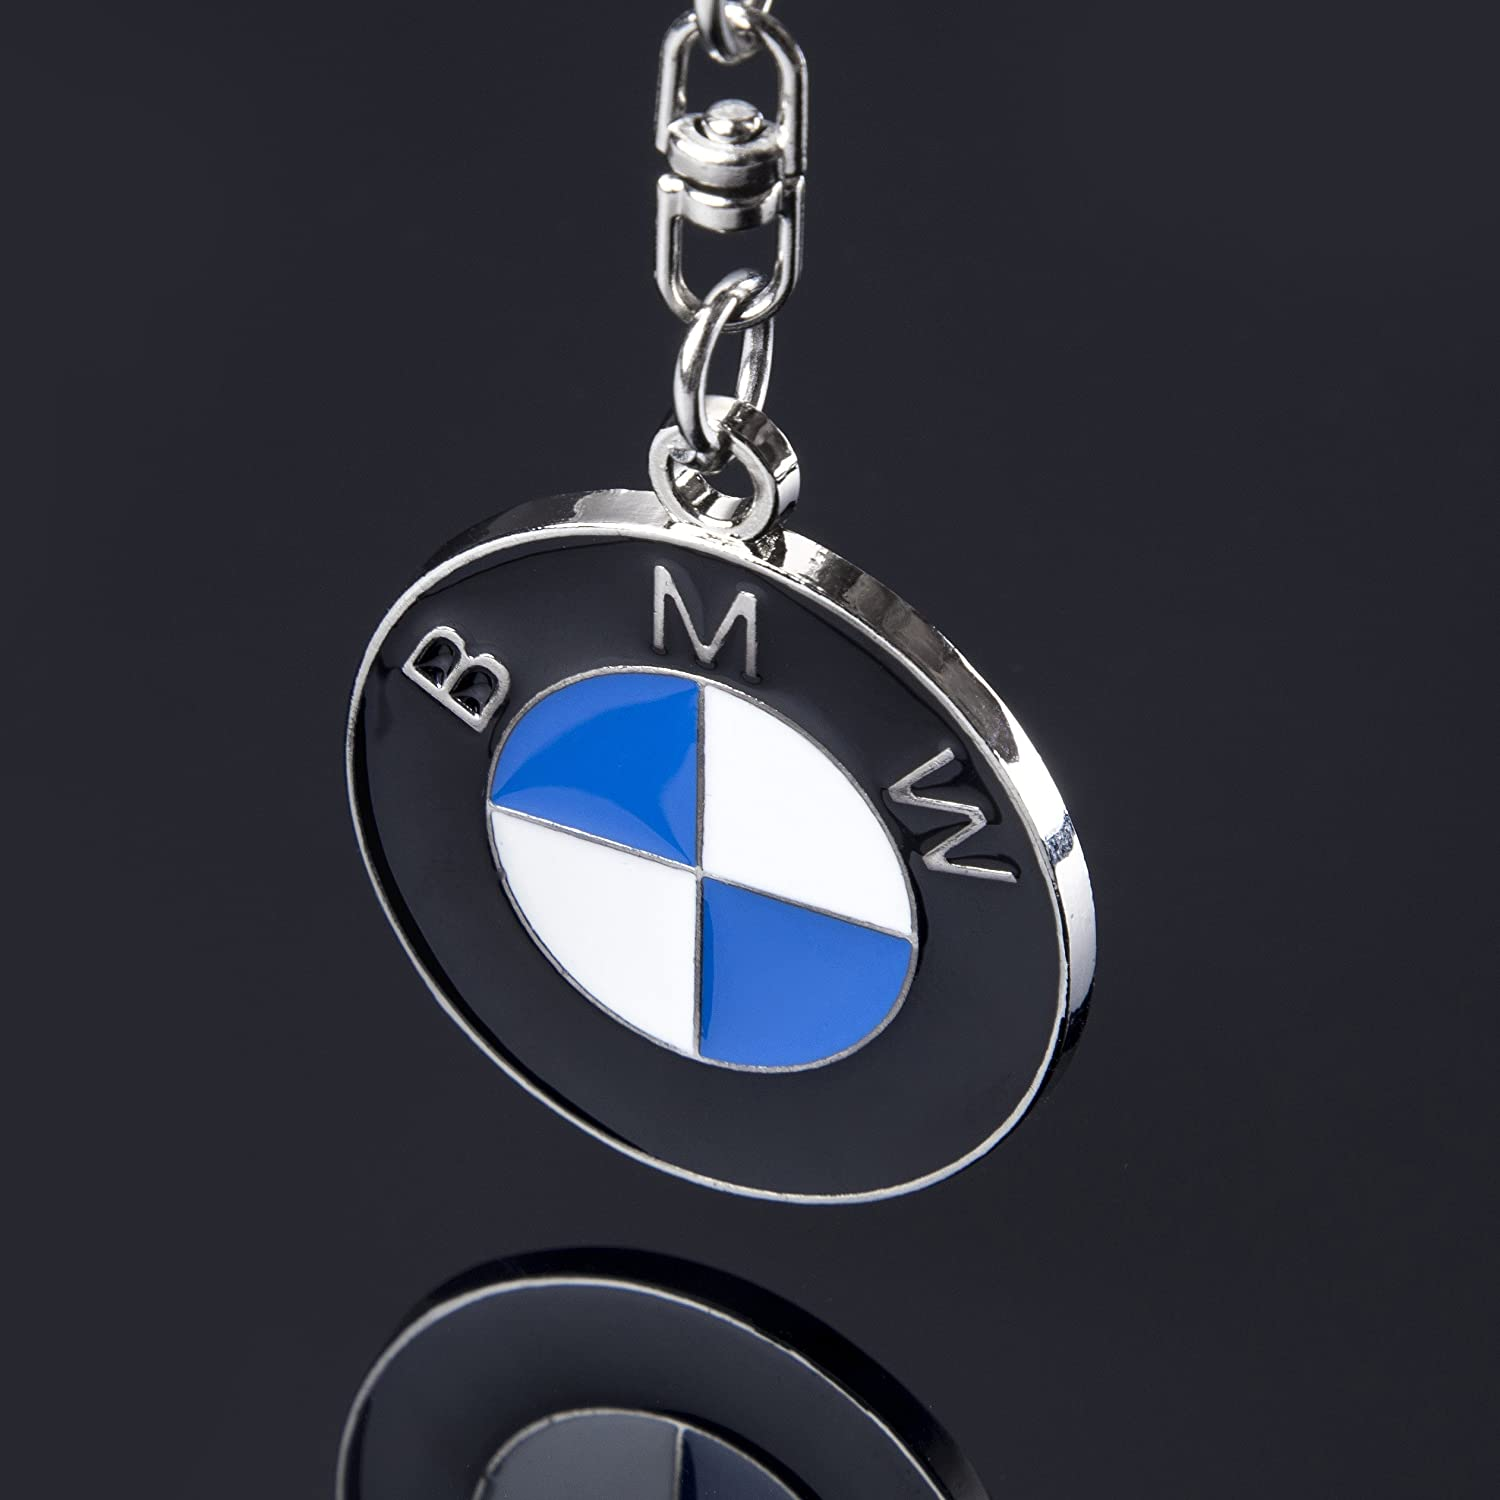 Car Key Chain Rings Benz ACGOING 3D Premium Metal Alloy Key Holder Best for Gifts